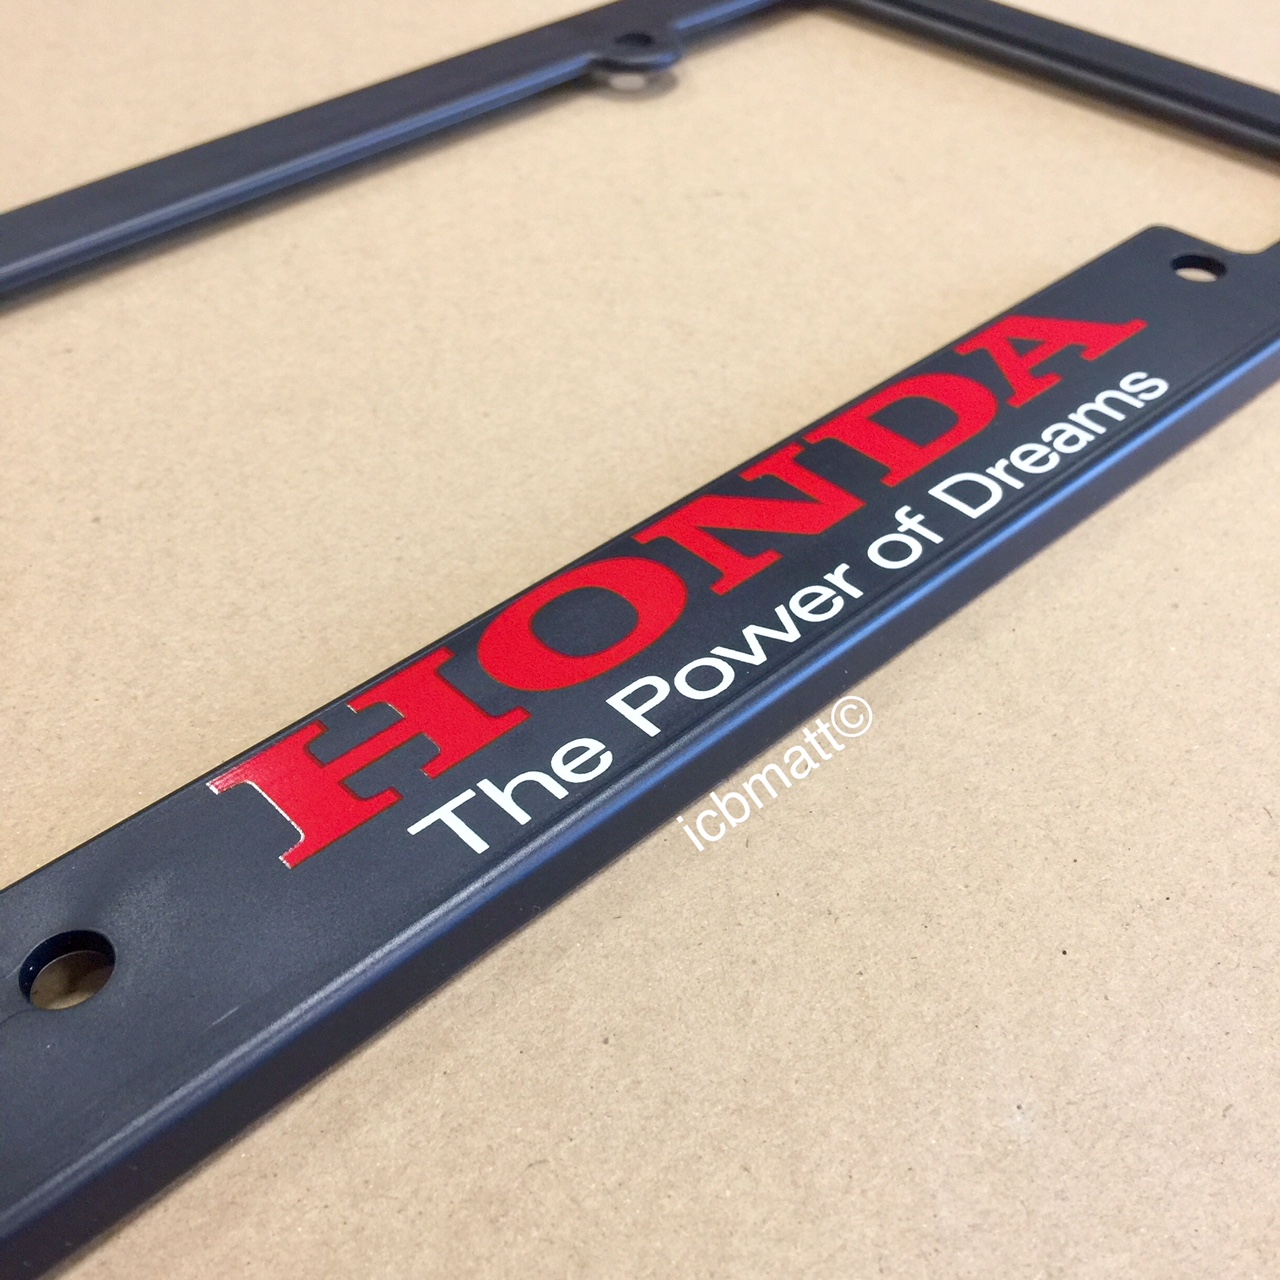 Honda Power Of Dreams License Plate Frame For Usdm Plates